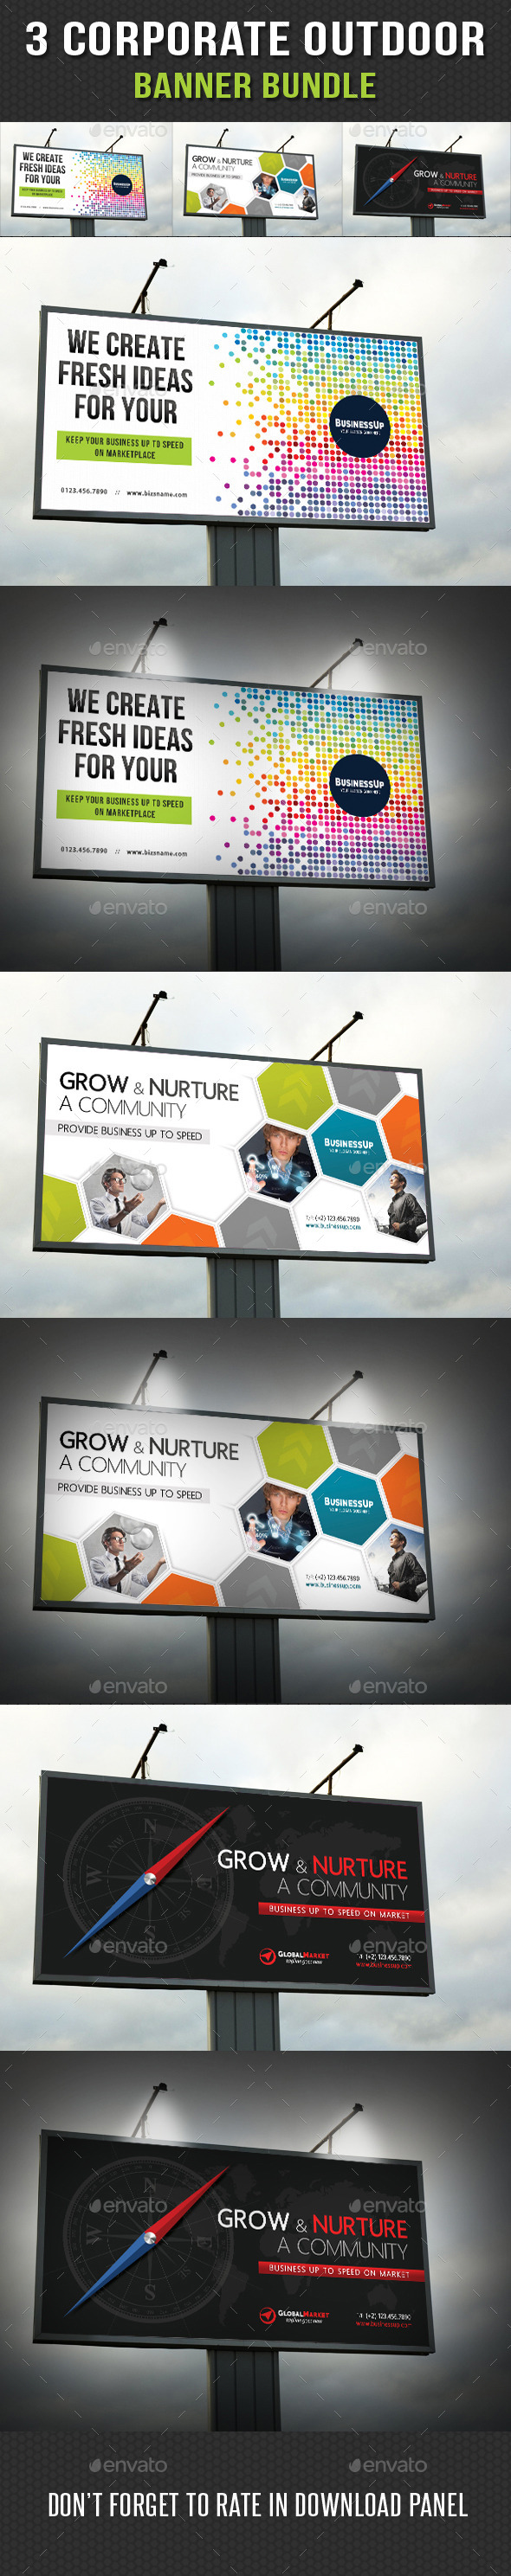 GraphicRiver 3 in 1 Corporate Outdoor Banner Bundle 11 11072280